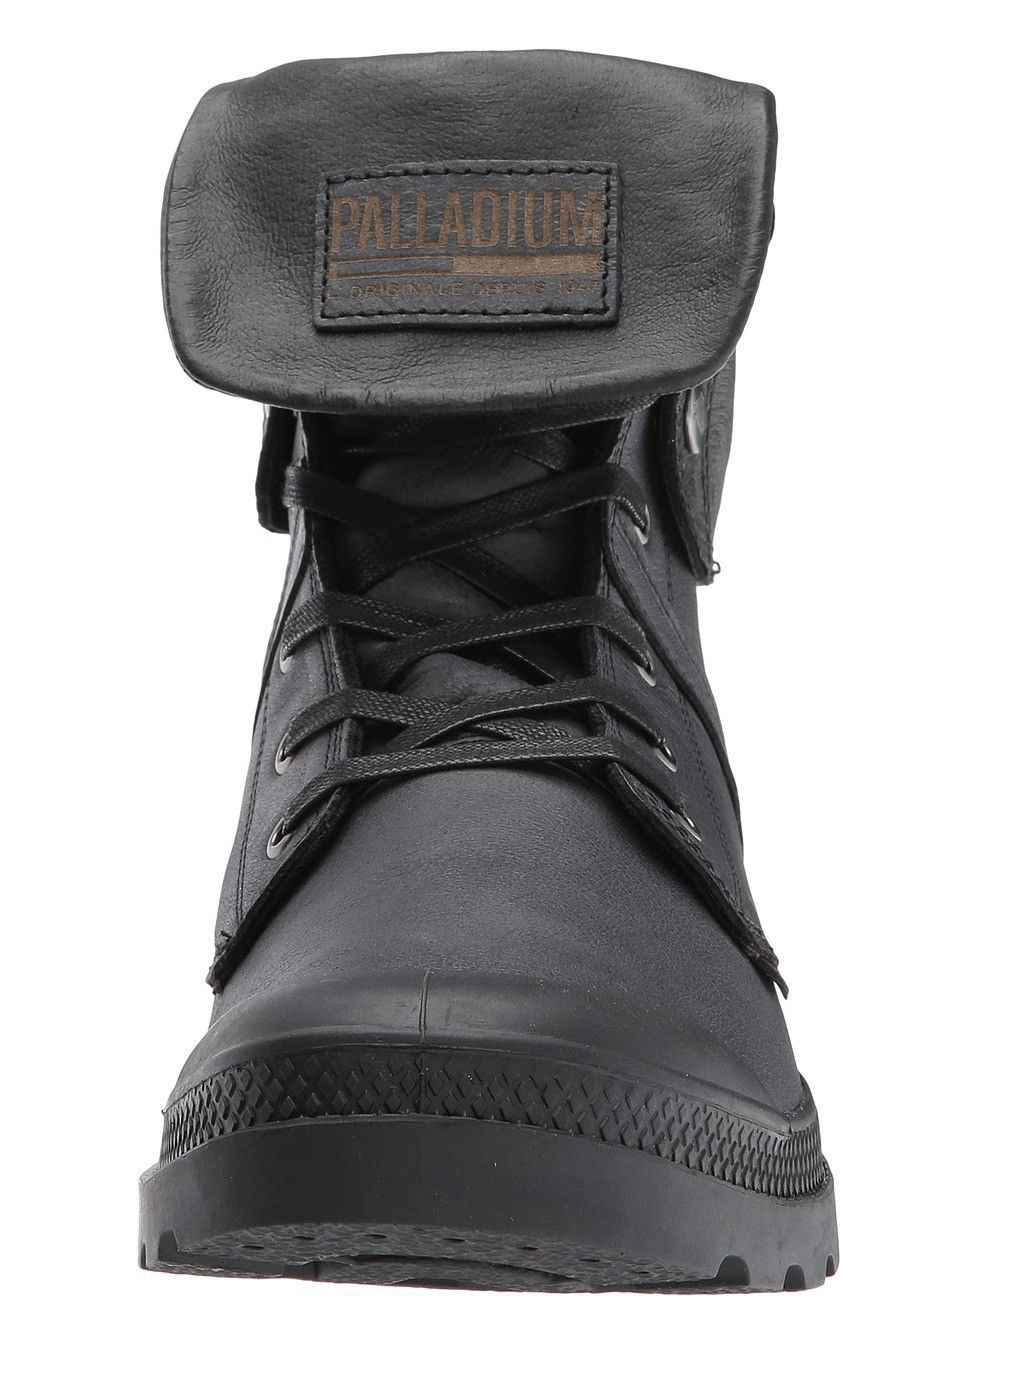 Palladium Pallabrouse Baggy L2 Black Lace Up Ankle Boots [73080-008]